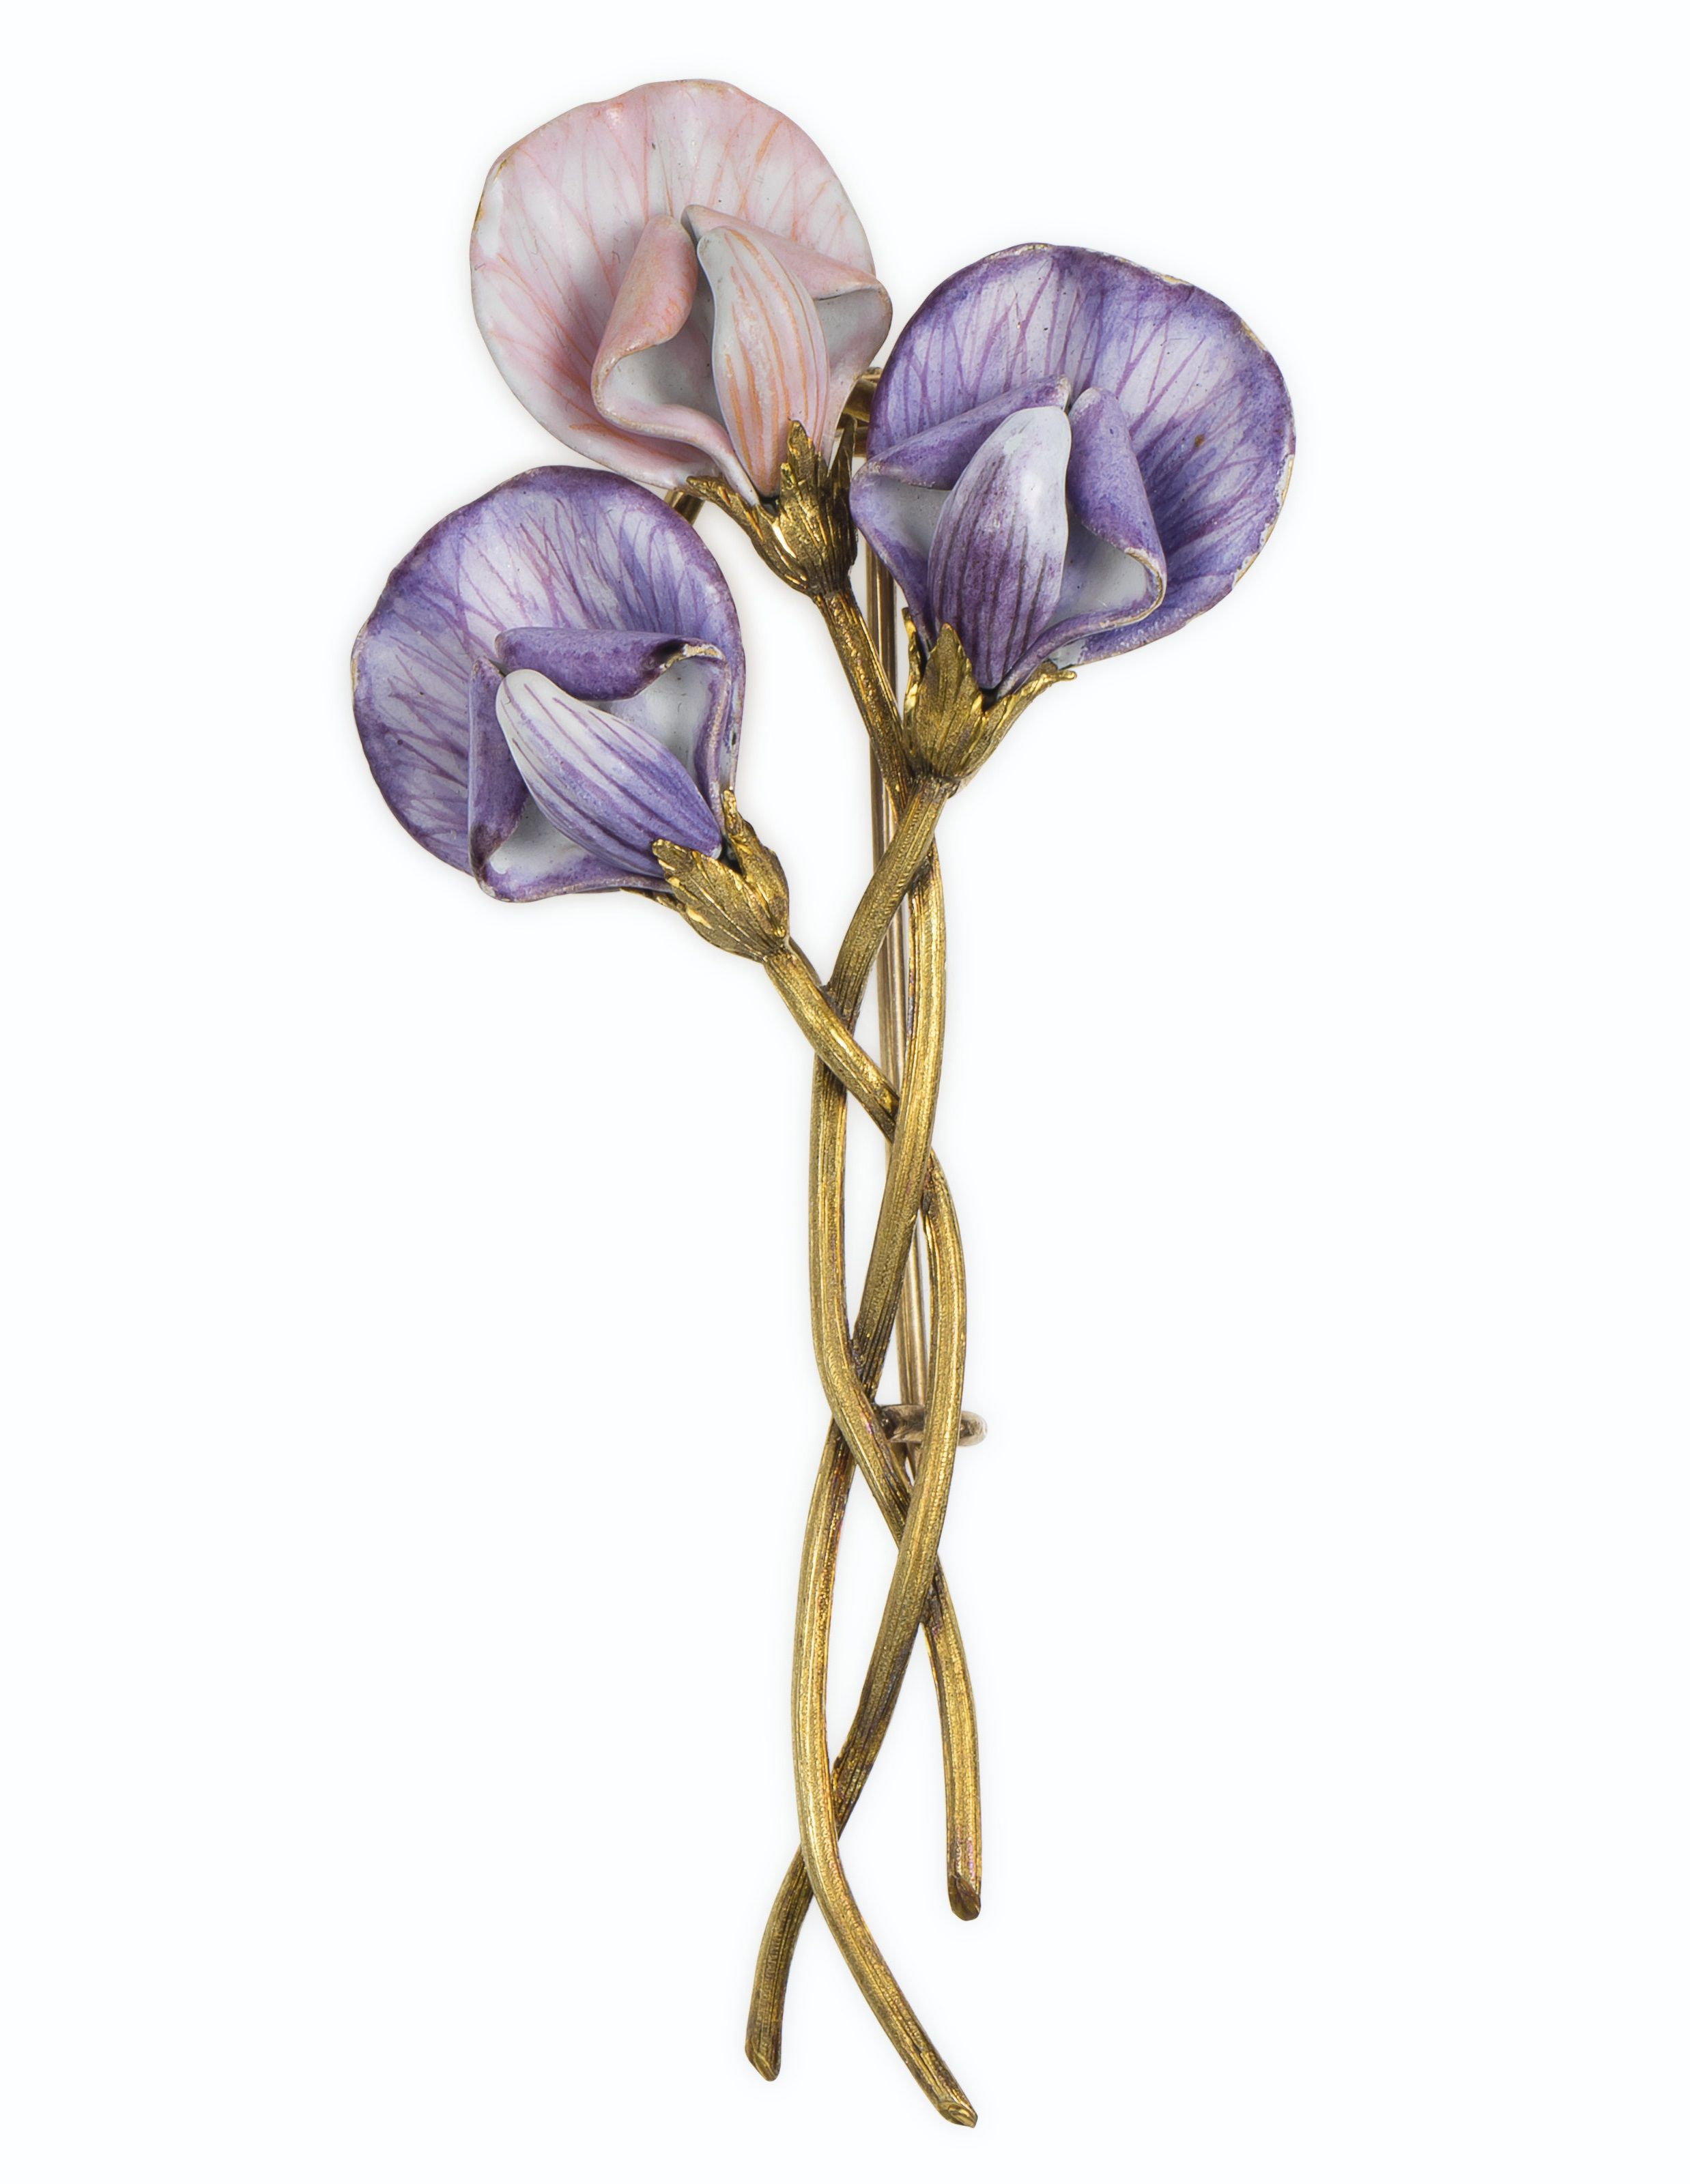 THE PRIVATE COLLECTION OF JOAN RIVERS: AN ANTIQUE GOLD AND ENAMEL FLOWER BROOCH. Designed as three purple and pink enameled iris blossoms, with intertwining gold stems, mounted in gold. Circa 1890's.